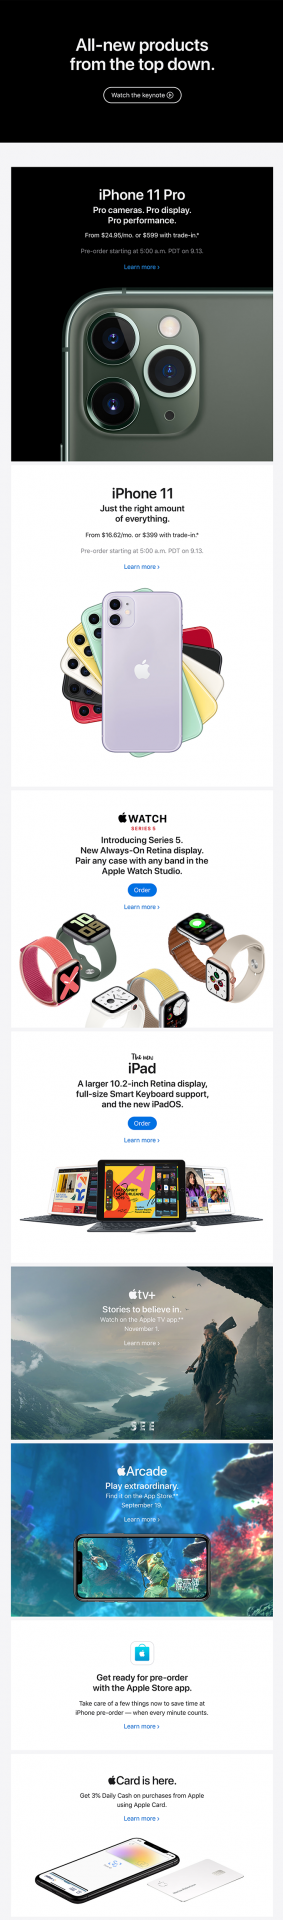 Email Automation Example by Apple - Showcasing their latest products from fall 2019